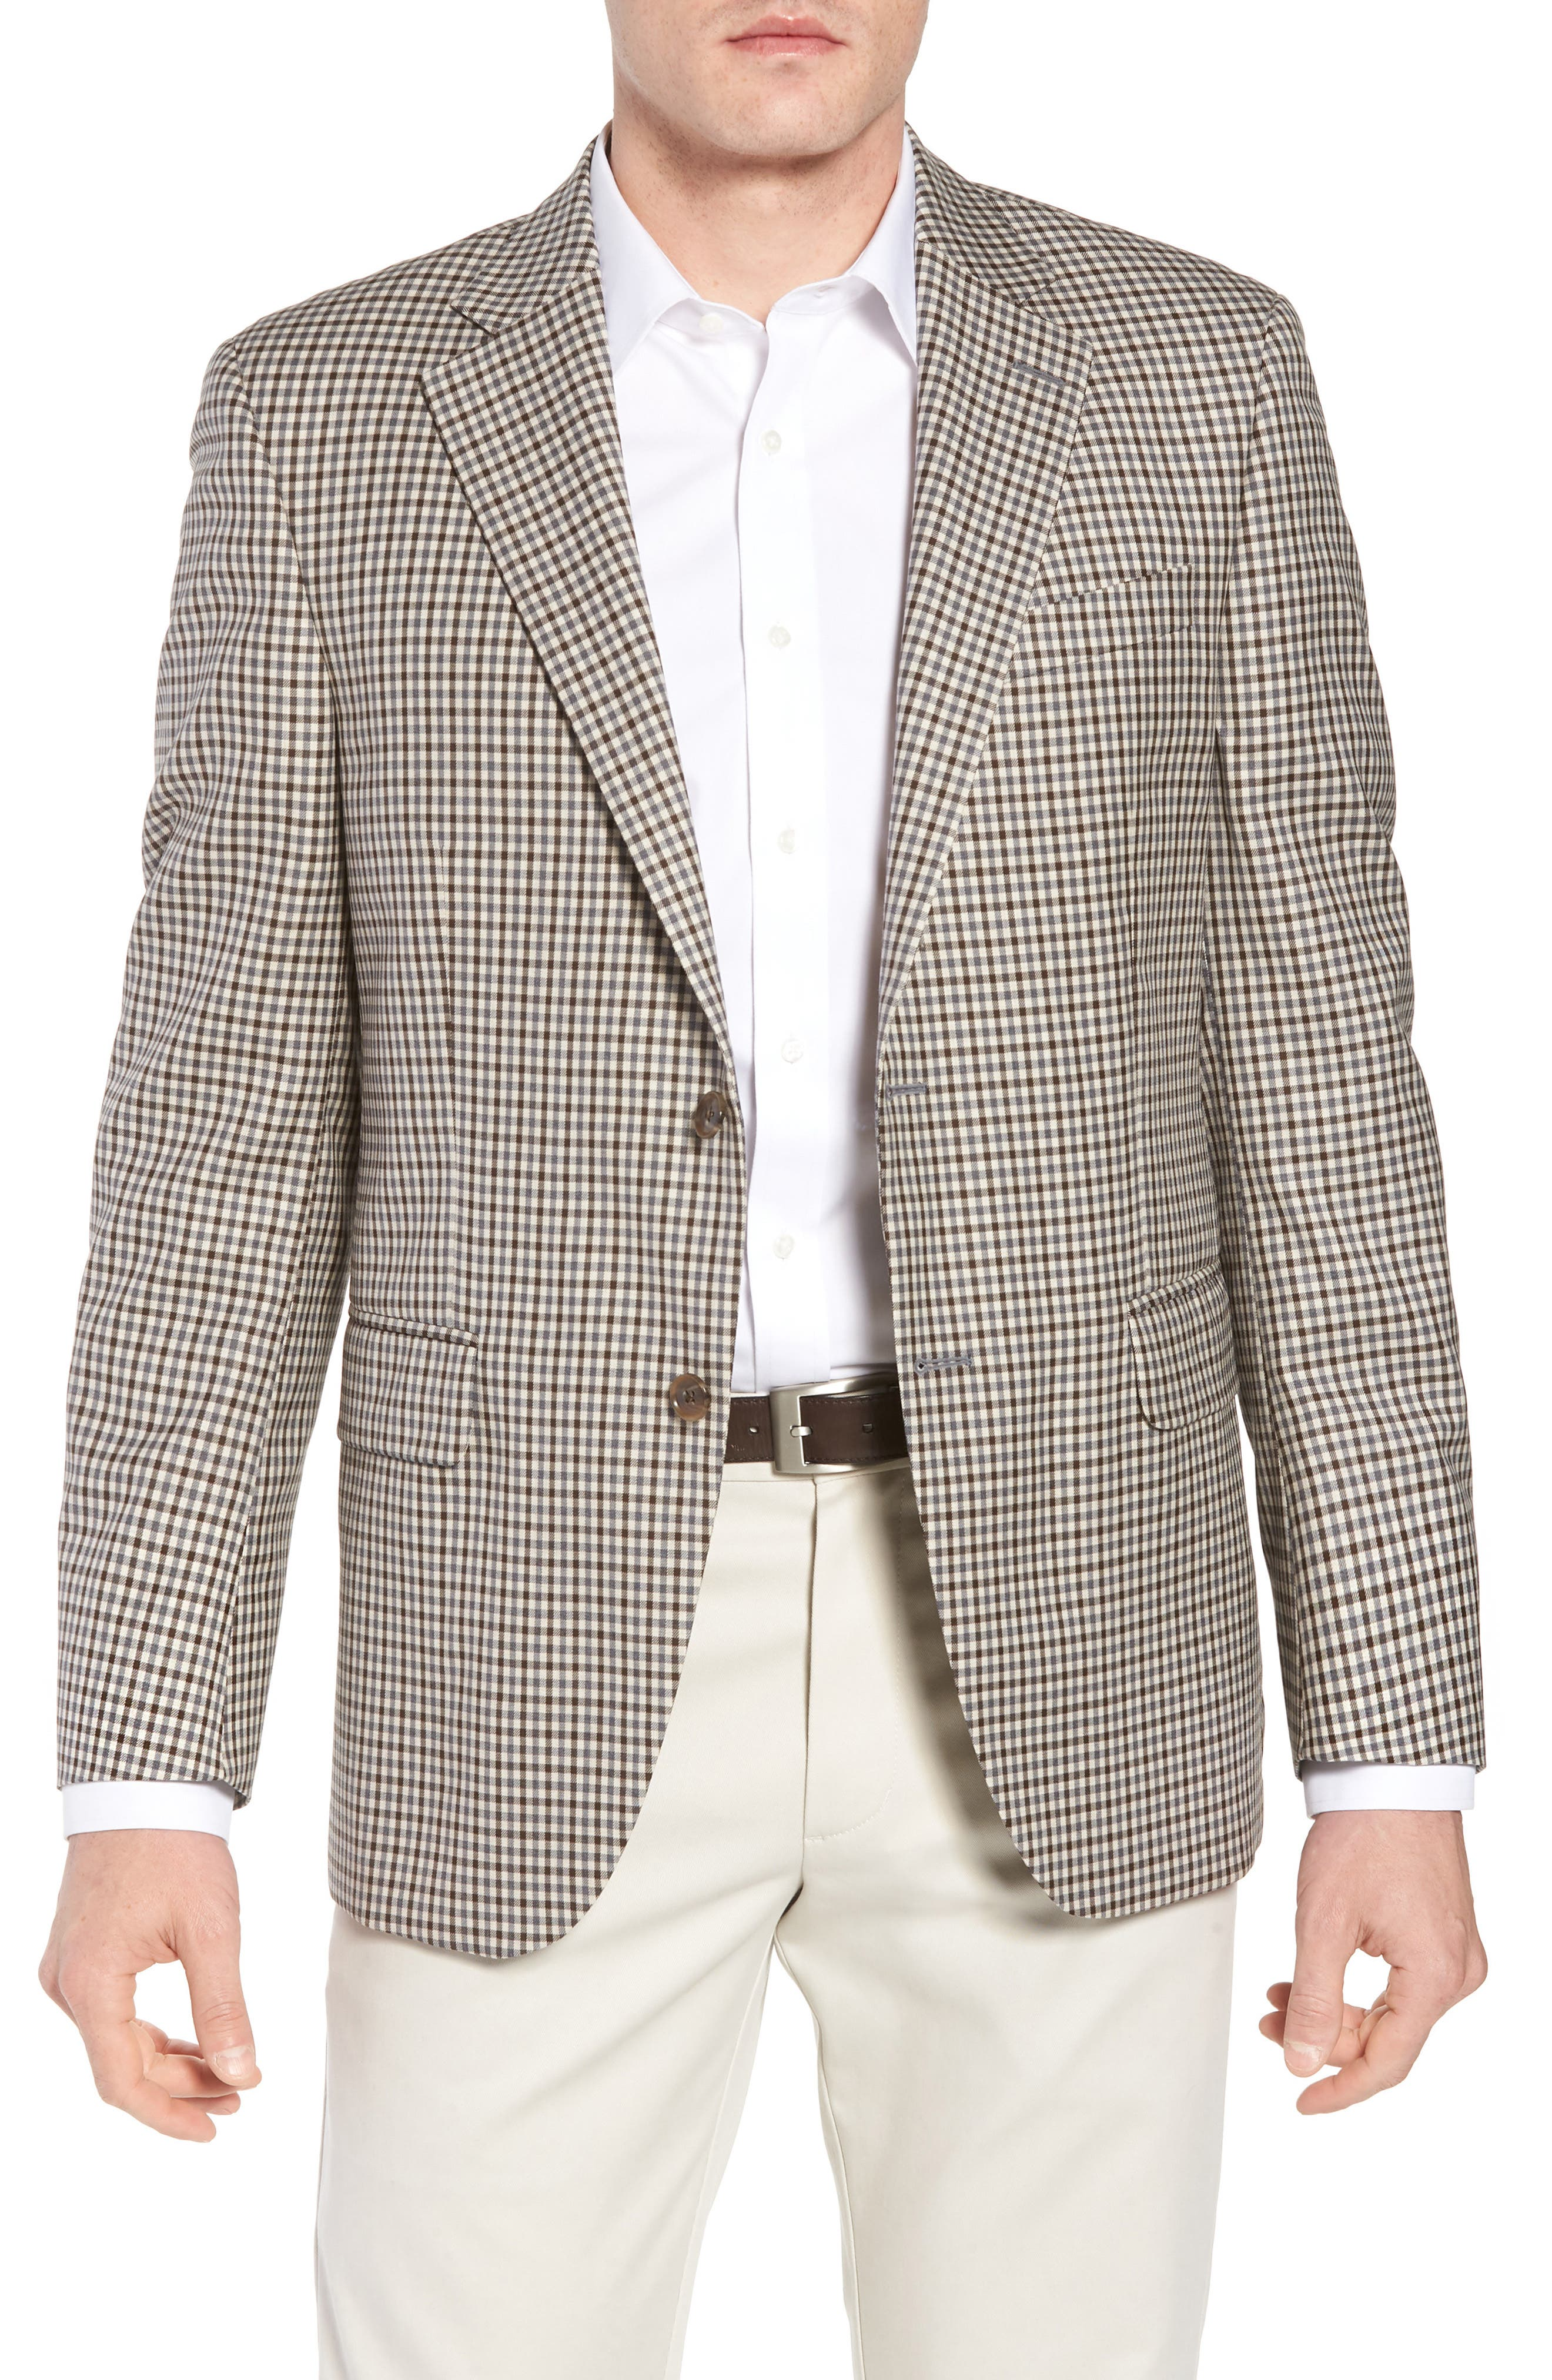 Classic Fit Check Wool Sport Coat,                         Main,                         color, 101